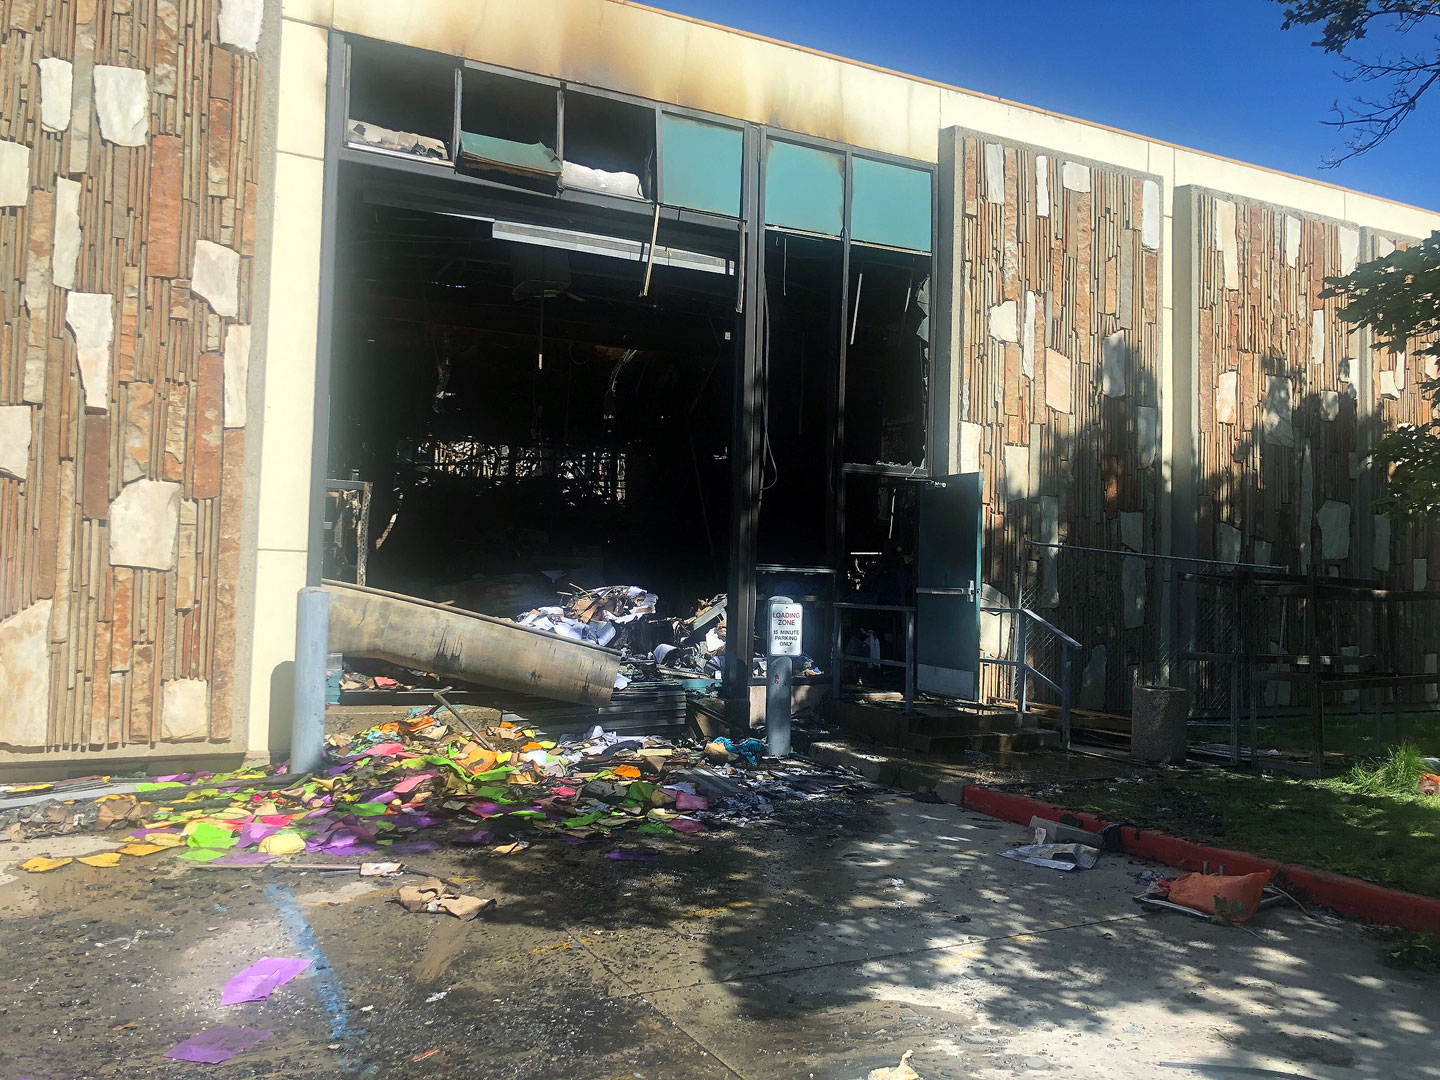 Building contents destroyed by fire